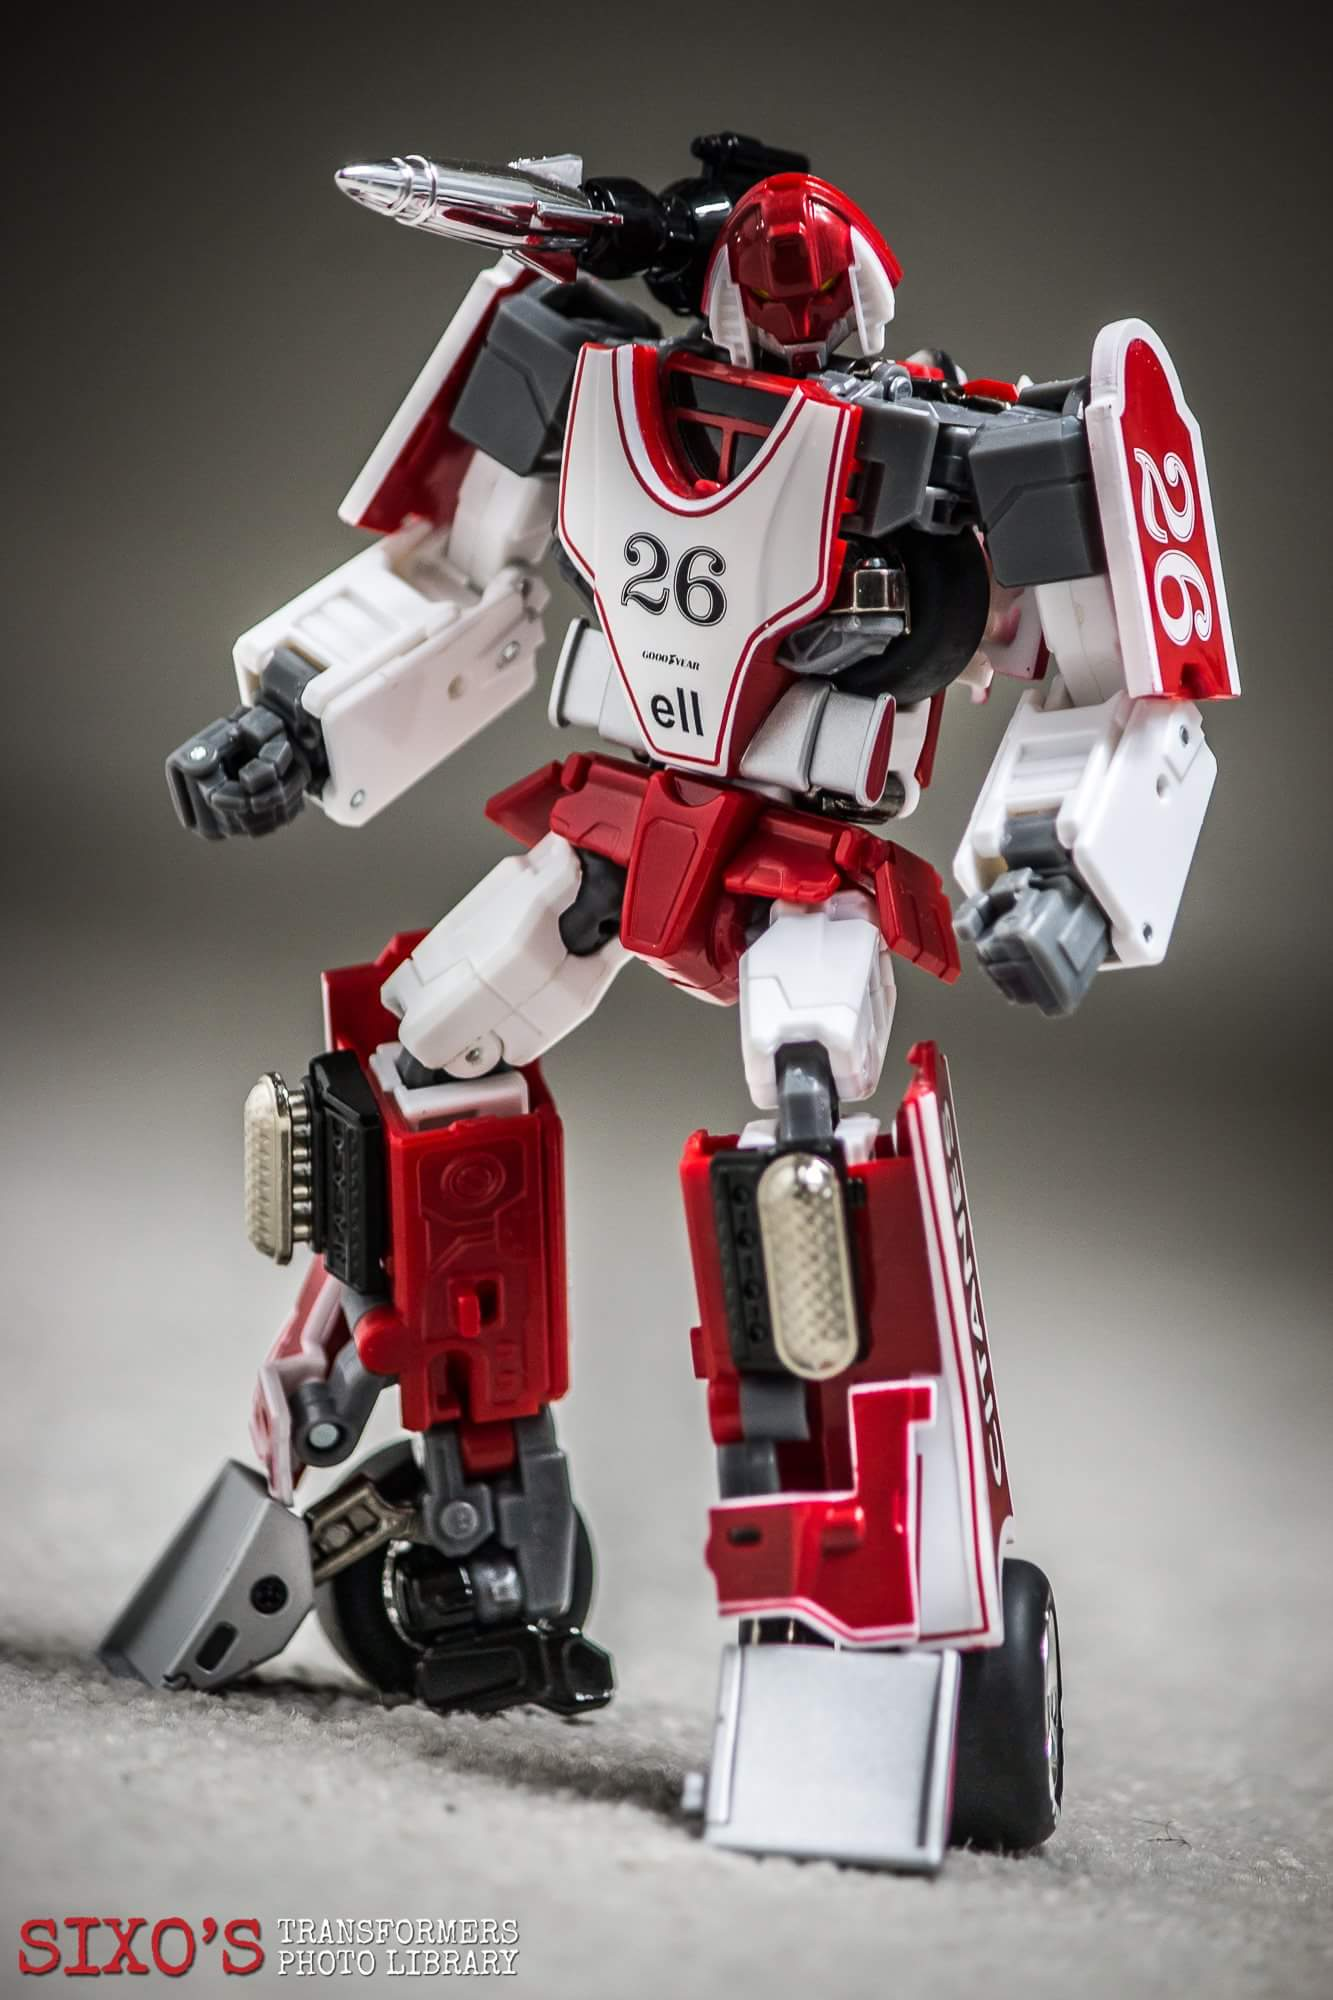 [Ocular Max] Produit Tiers - PS-01 Sphinx (aka Mirage G1) + PS-02 Liger (aka Mirage Diaclone) - Page 3 LKyy4bfA